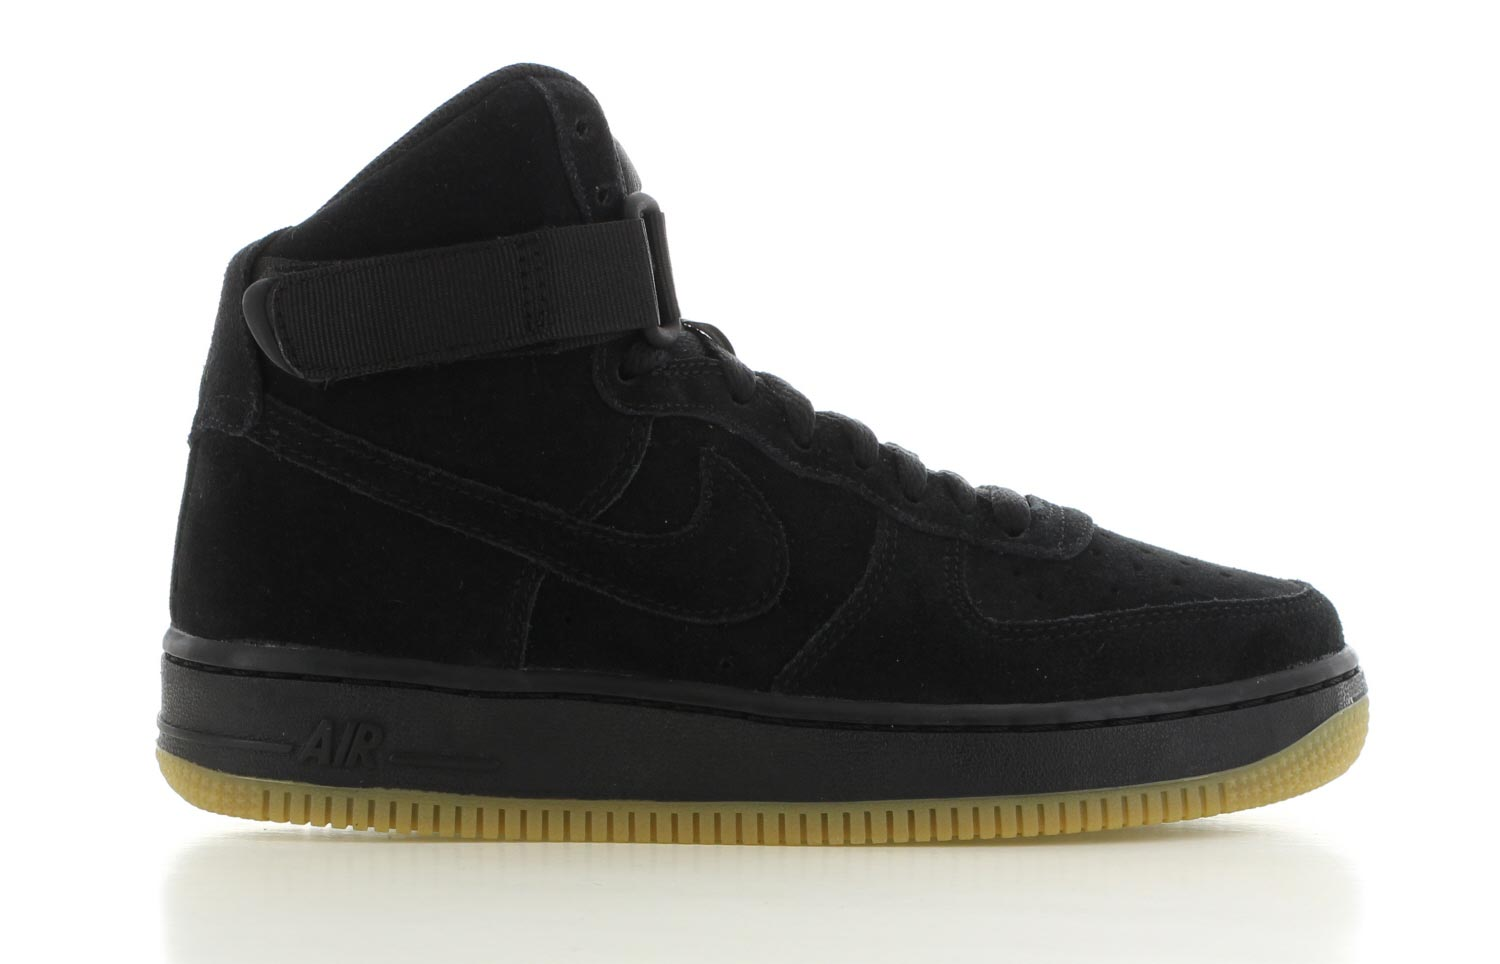 Image of Nike Air Force 1 High Lv8 Zwart